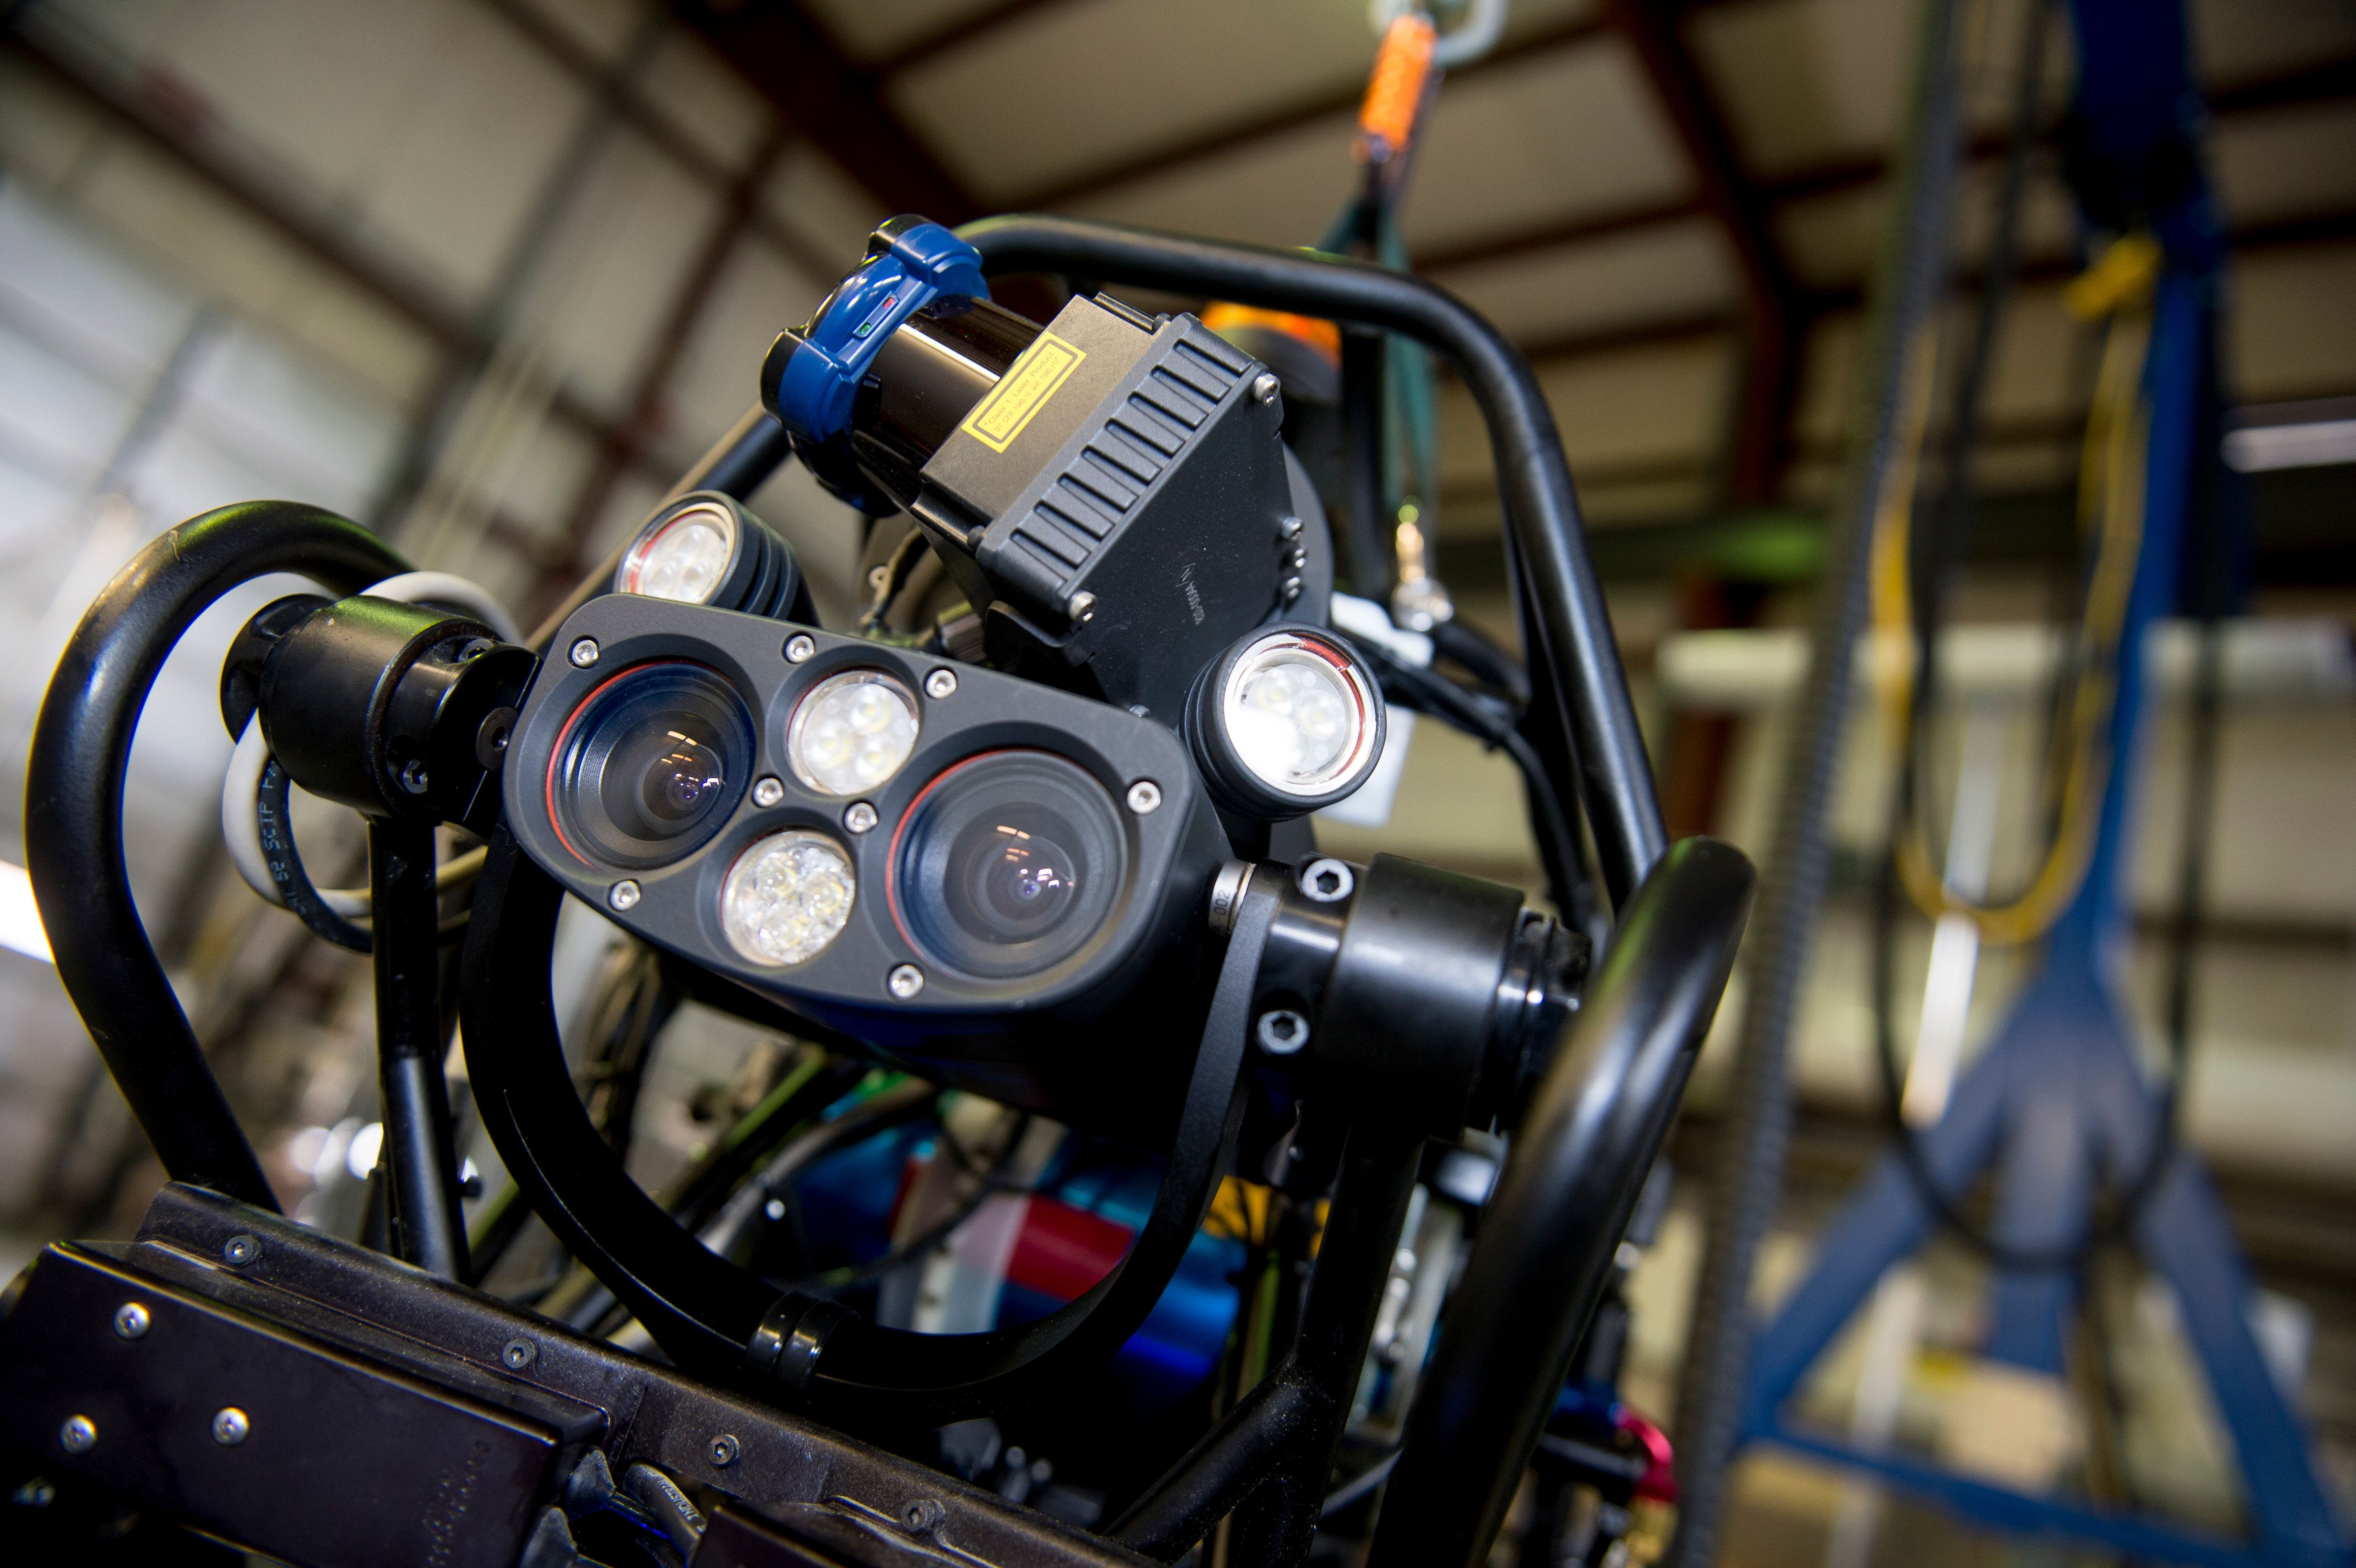 BOSTON, MA - April 7: The capabilities of the Atlas robot are demonstrated during the Massachusetts Institute of Technology's Computer Science and Artificial Intelligence Laboratory's Demo Day on April 6, 2013 in Boston, Massachusetts. The Boston Dynamics funded Atlas robot is a part of the DARPA Robotics Challenge program. (Photo by Ann Hermes/The Christian Science Monitor via Getty Images)